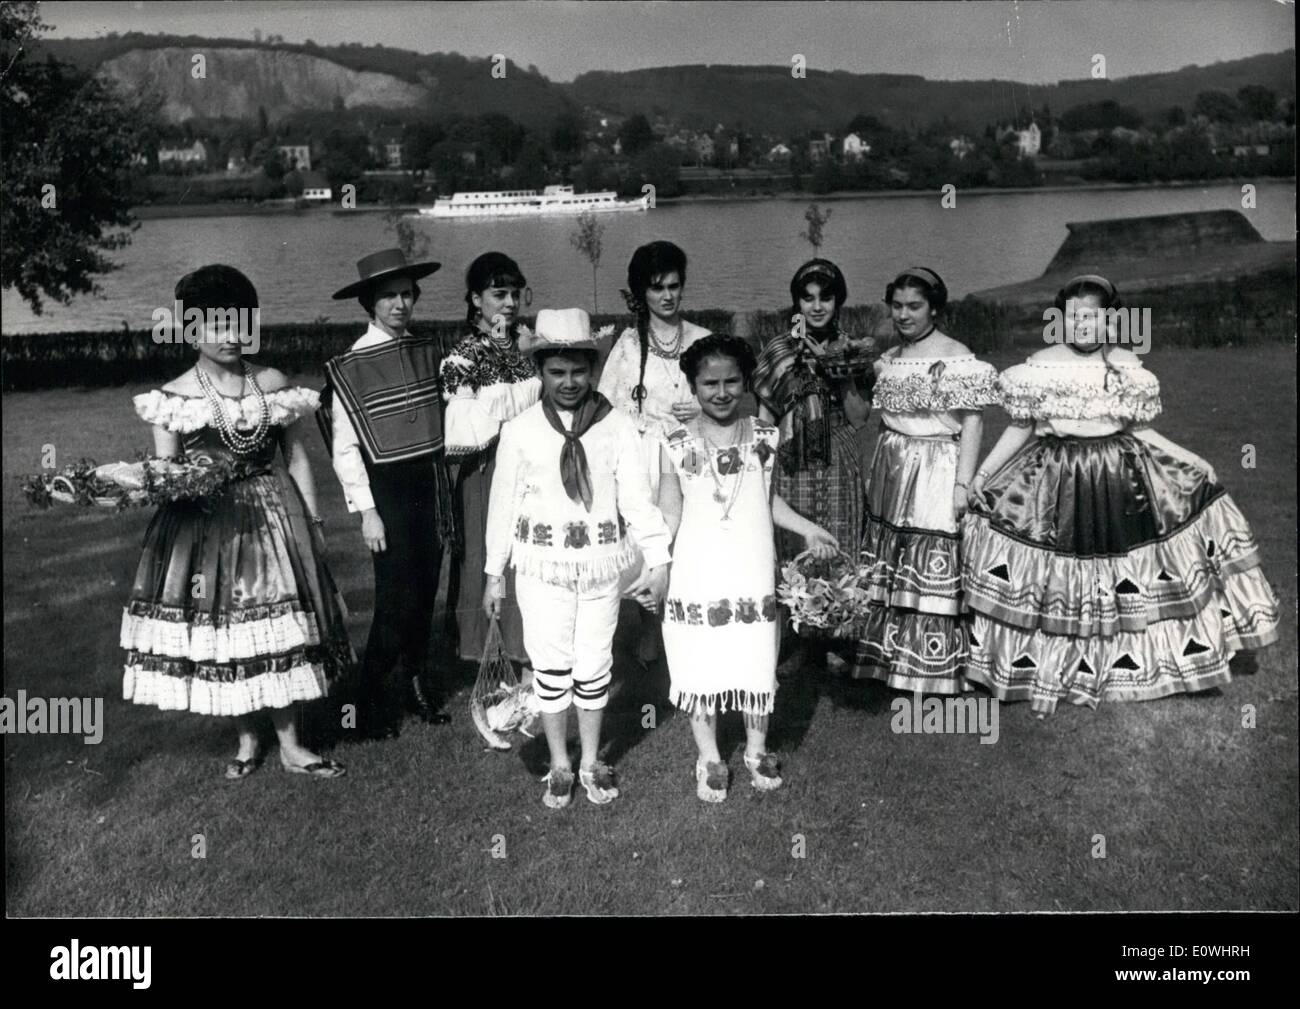 May 05, 1963 - Wife's of the diplomats spend for the convalescence-institution for mothers. The wife's and daughters of the Ambassadors, accredited at Bonn, showed during s a big national costume- and fashion -parade before the national club the well-known historical and also the newest created dress from their native country. This interesting meeting stood under the motto ''The fashion is uniting the women all over the world more than the language''. The net proceeds of this event will get the convalescence- institution for mothers - Stock Image